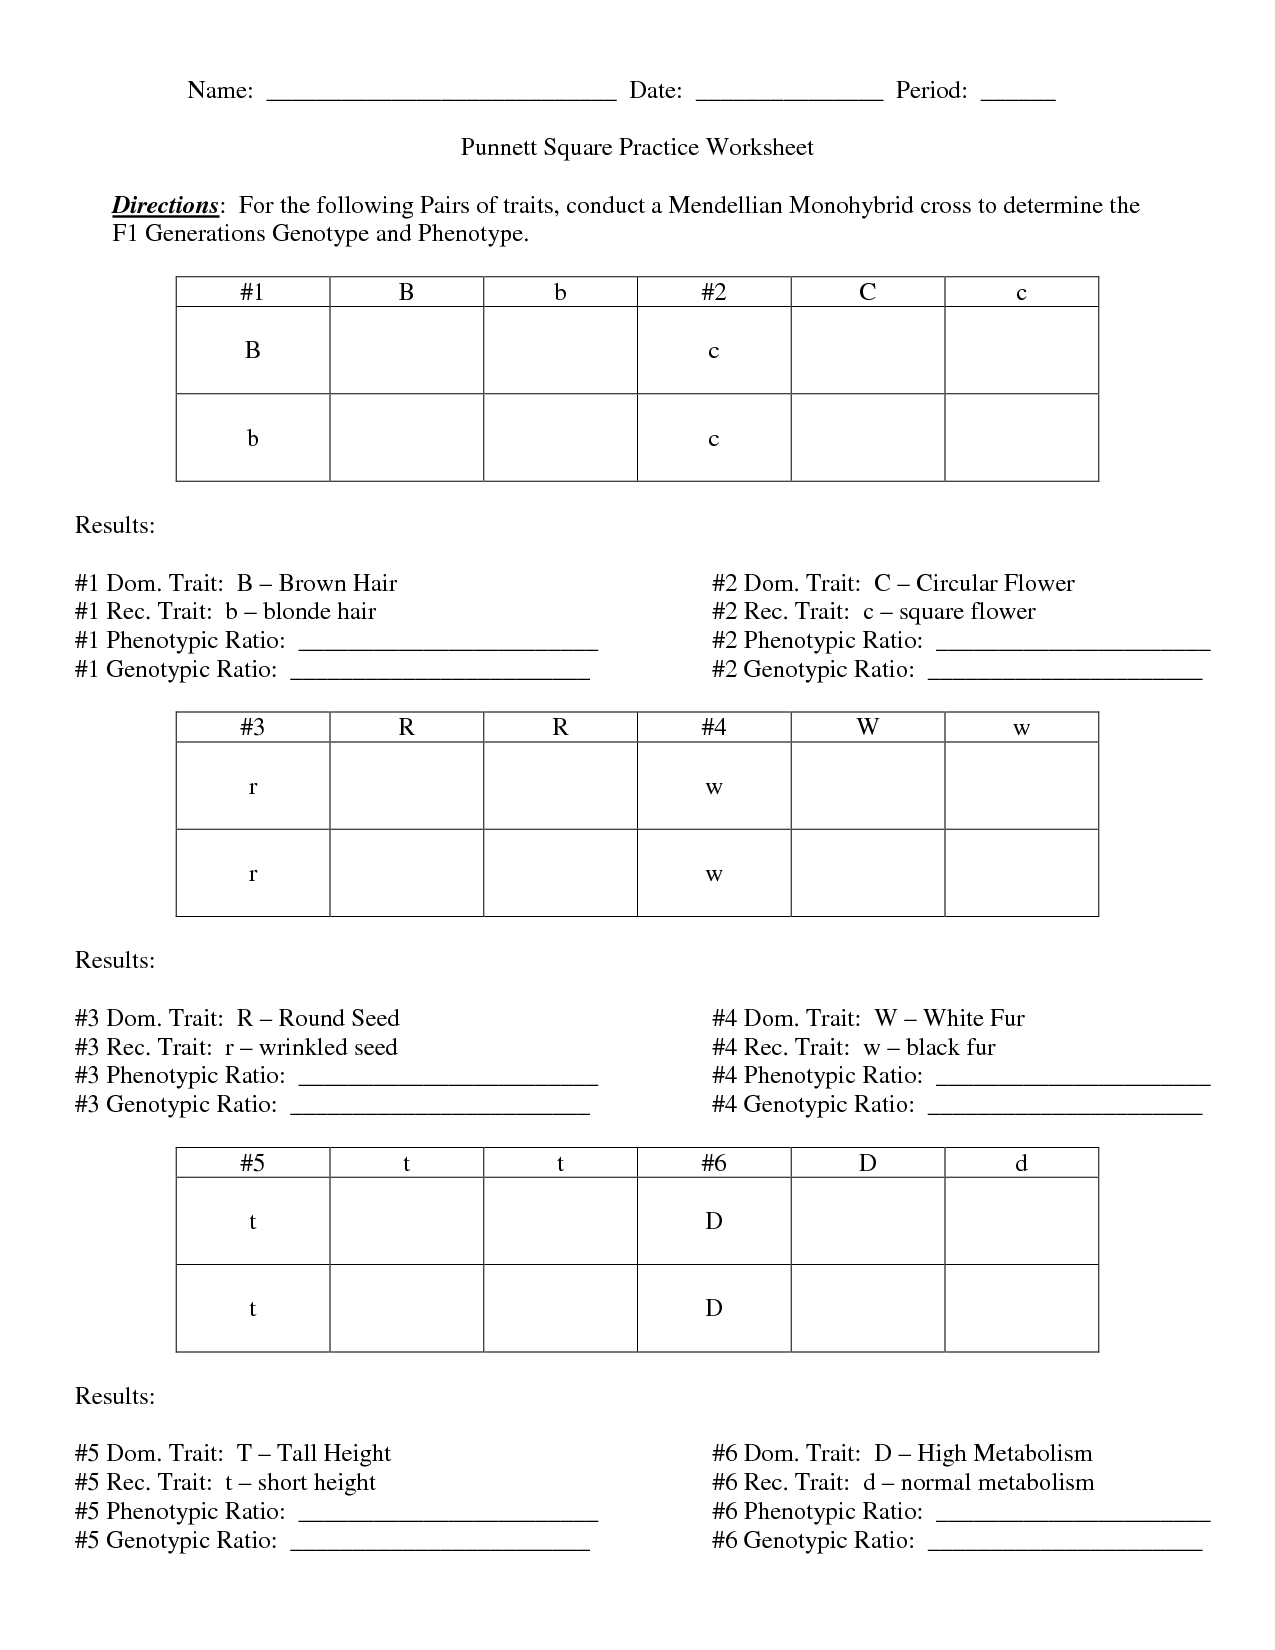 Worksheet Punnett Square Worksheet 1 Answer Key